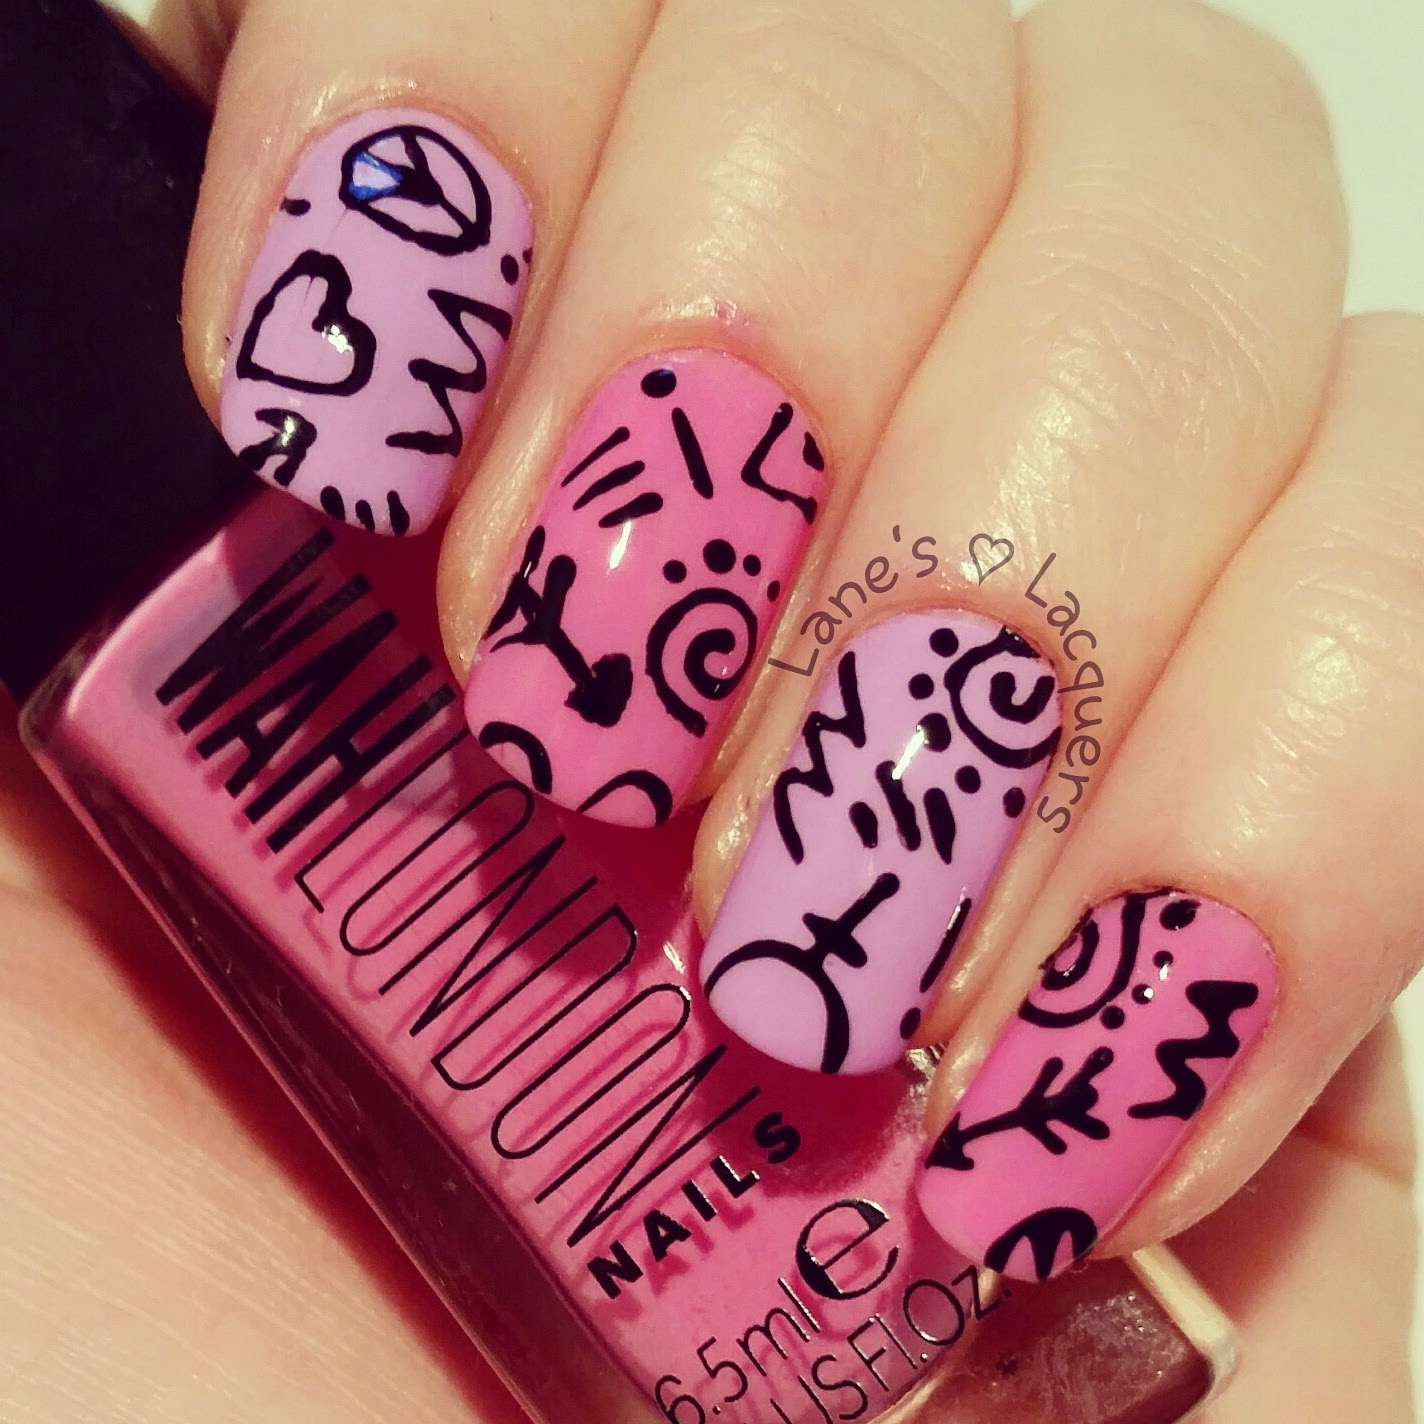 wah-nails-down-town-nail-art (2)